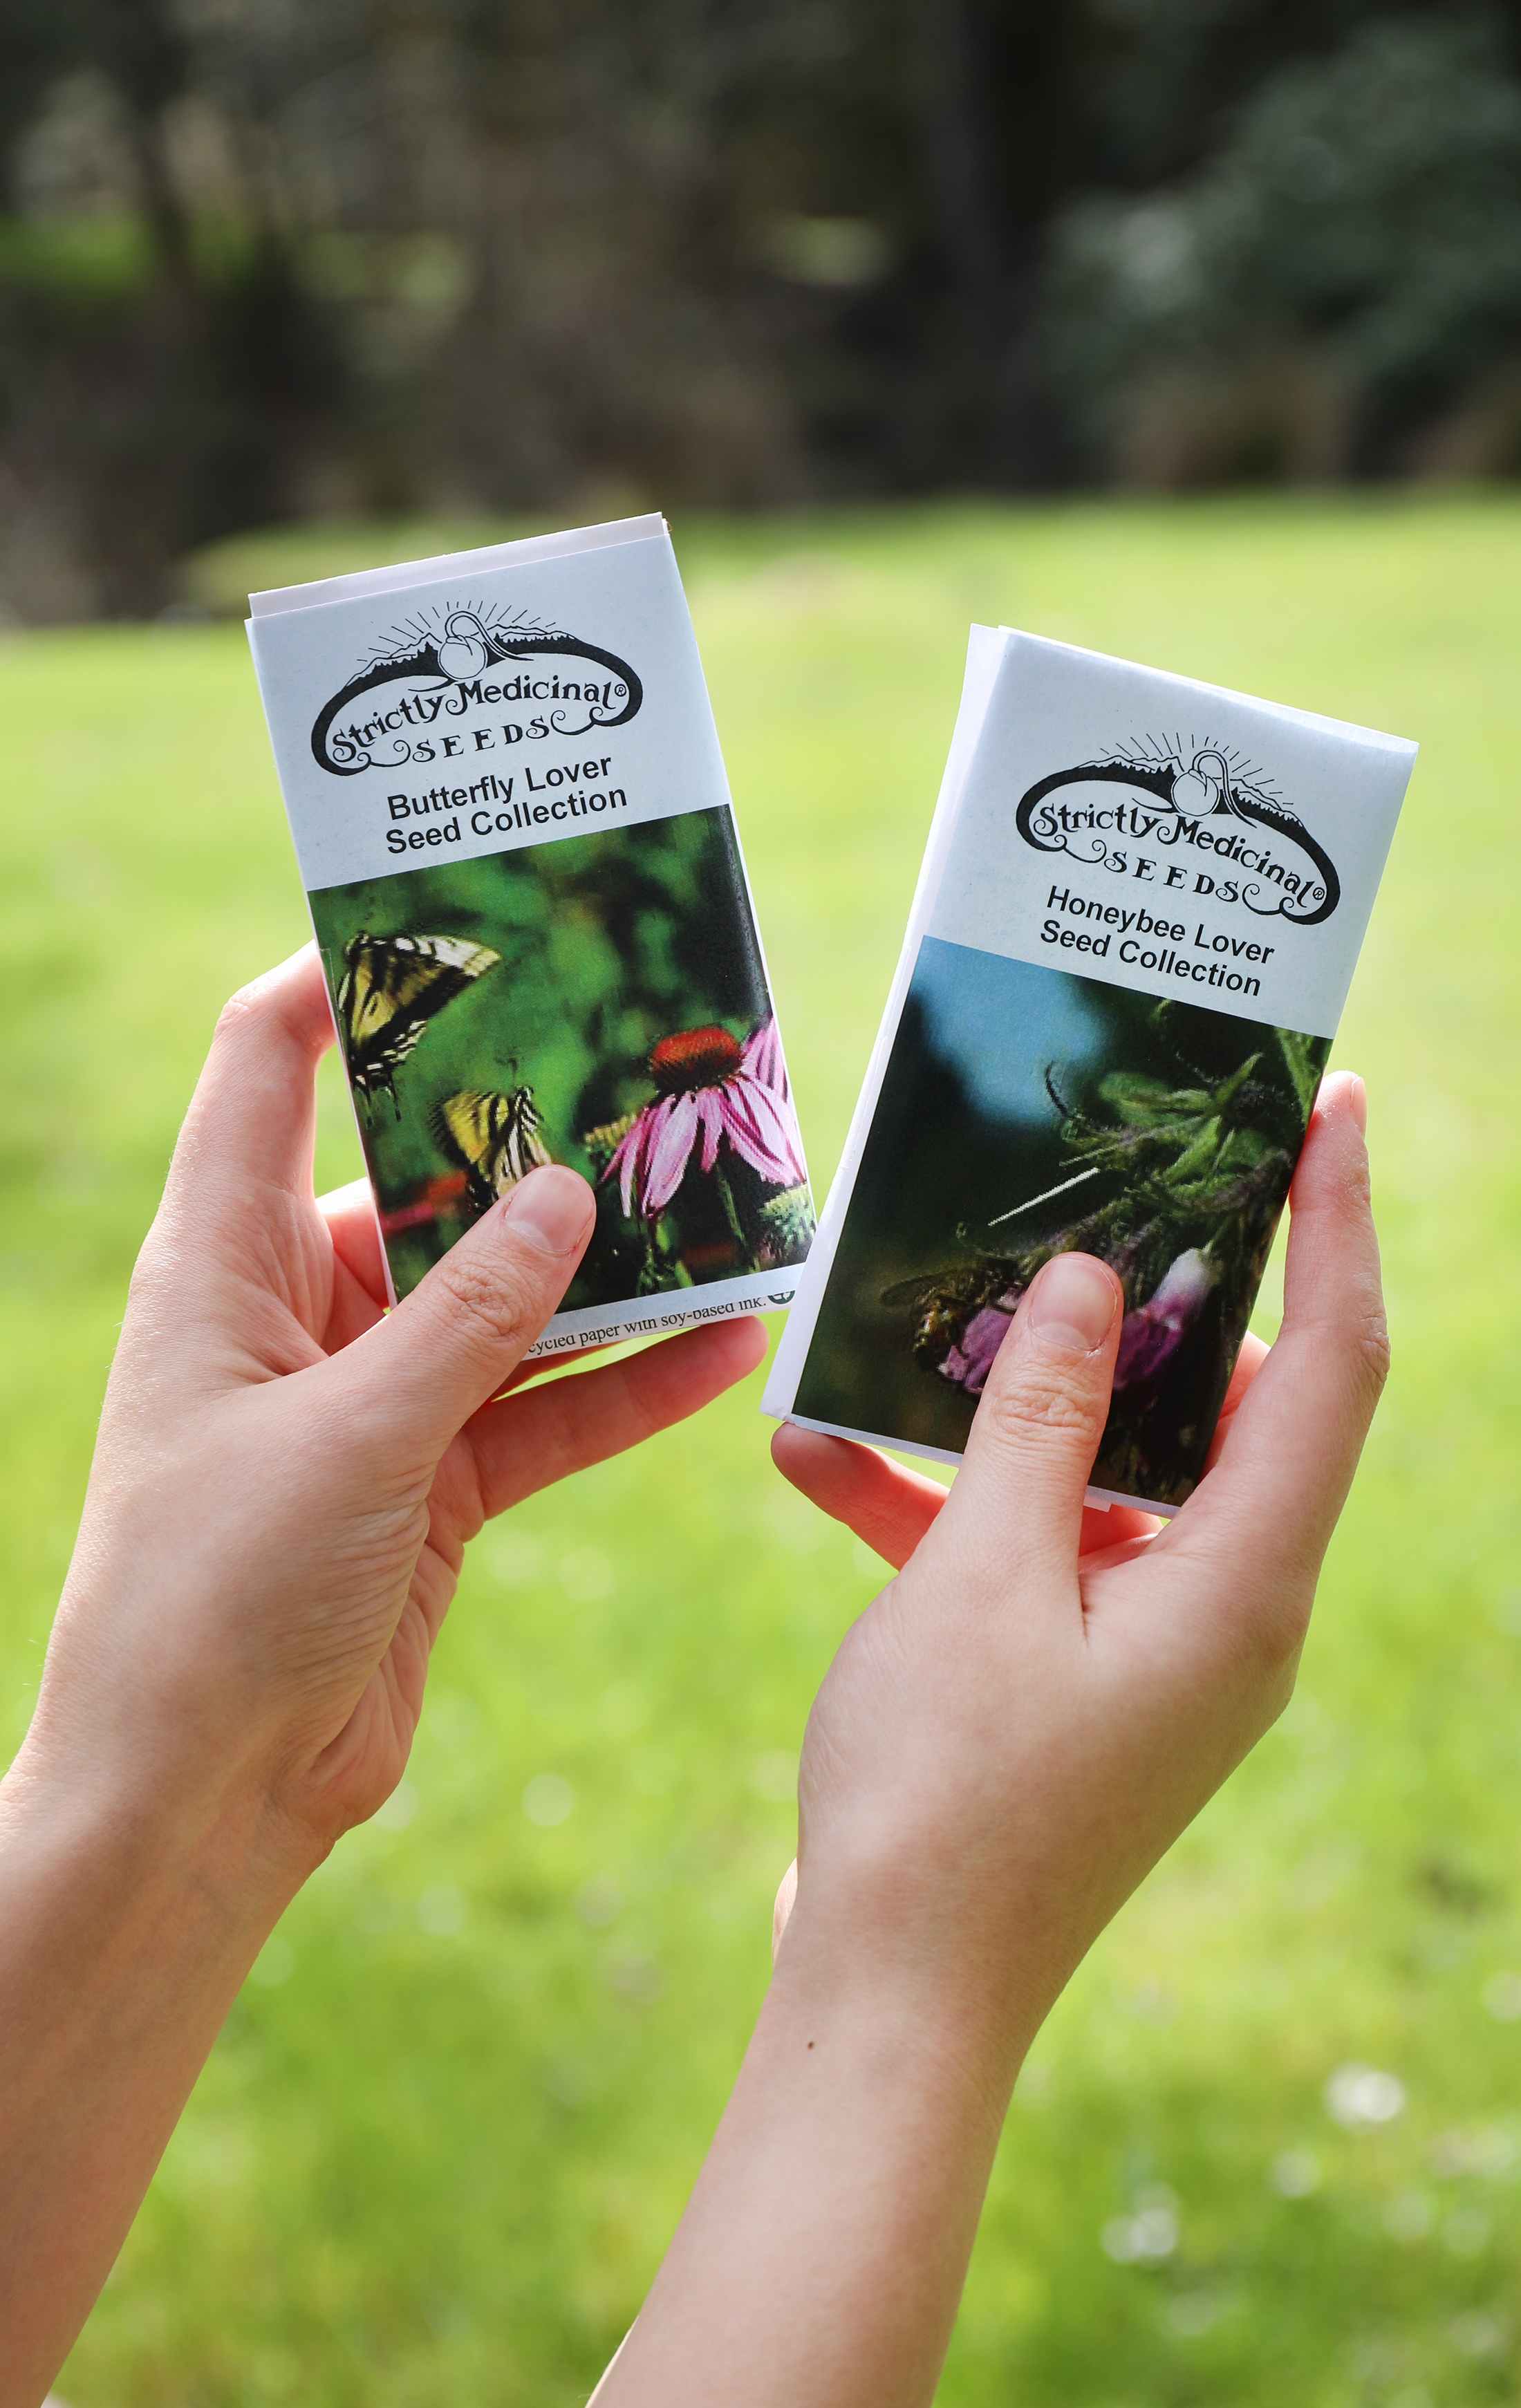 Hands holding seed packets in front of grassy field